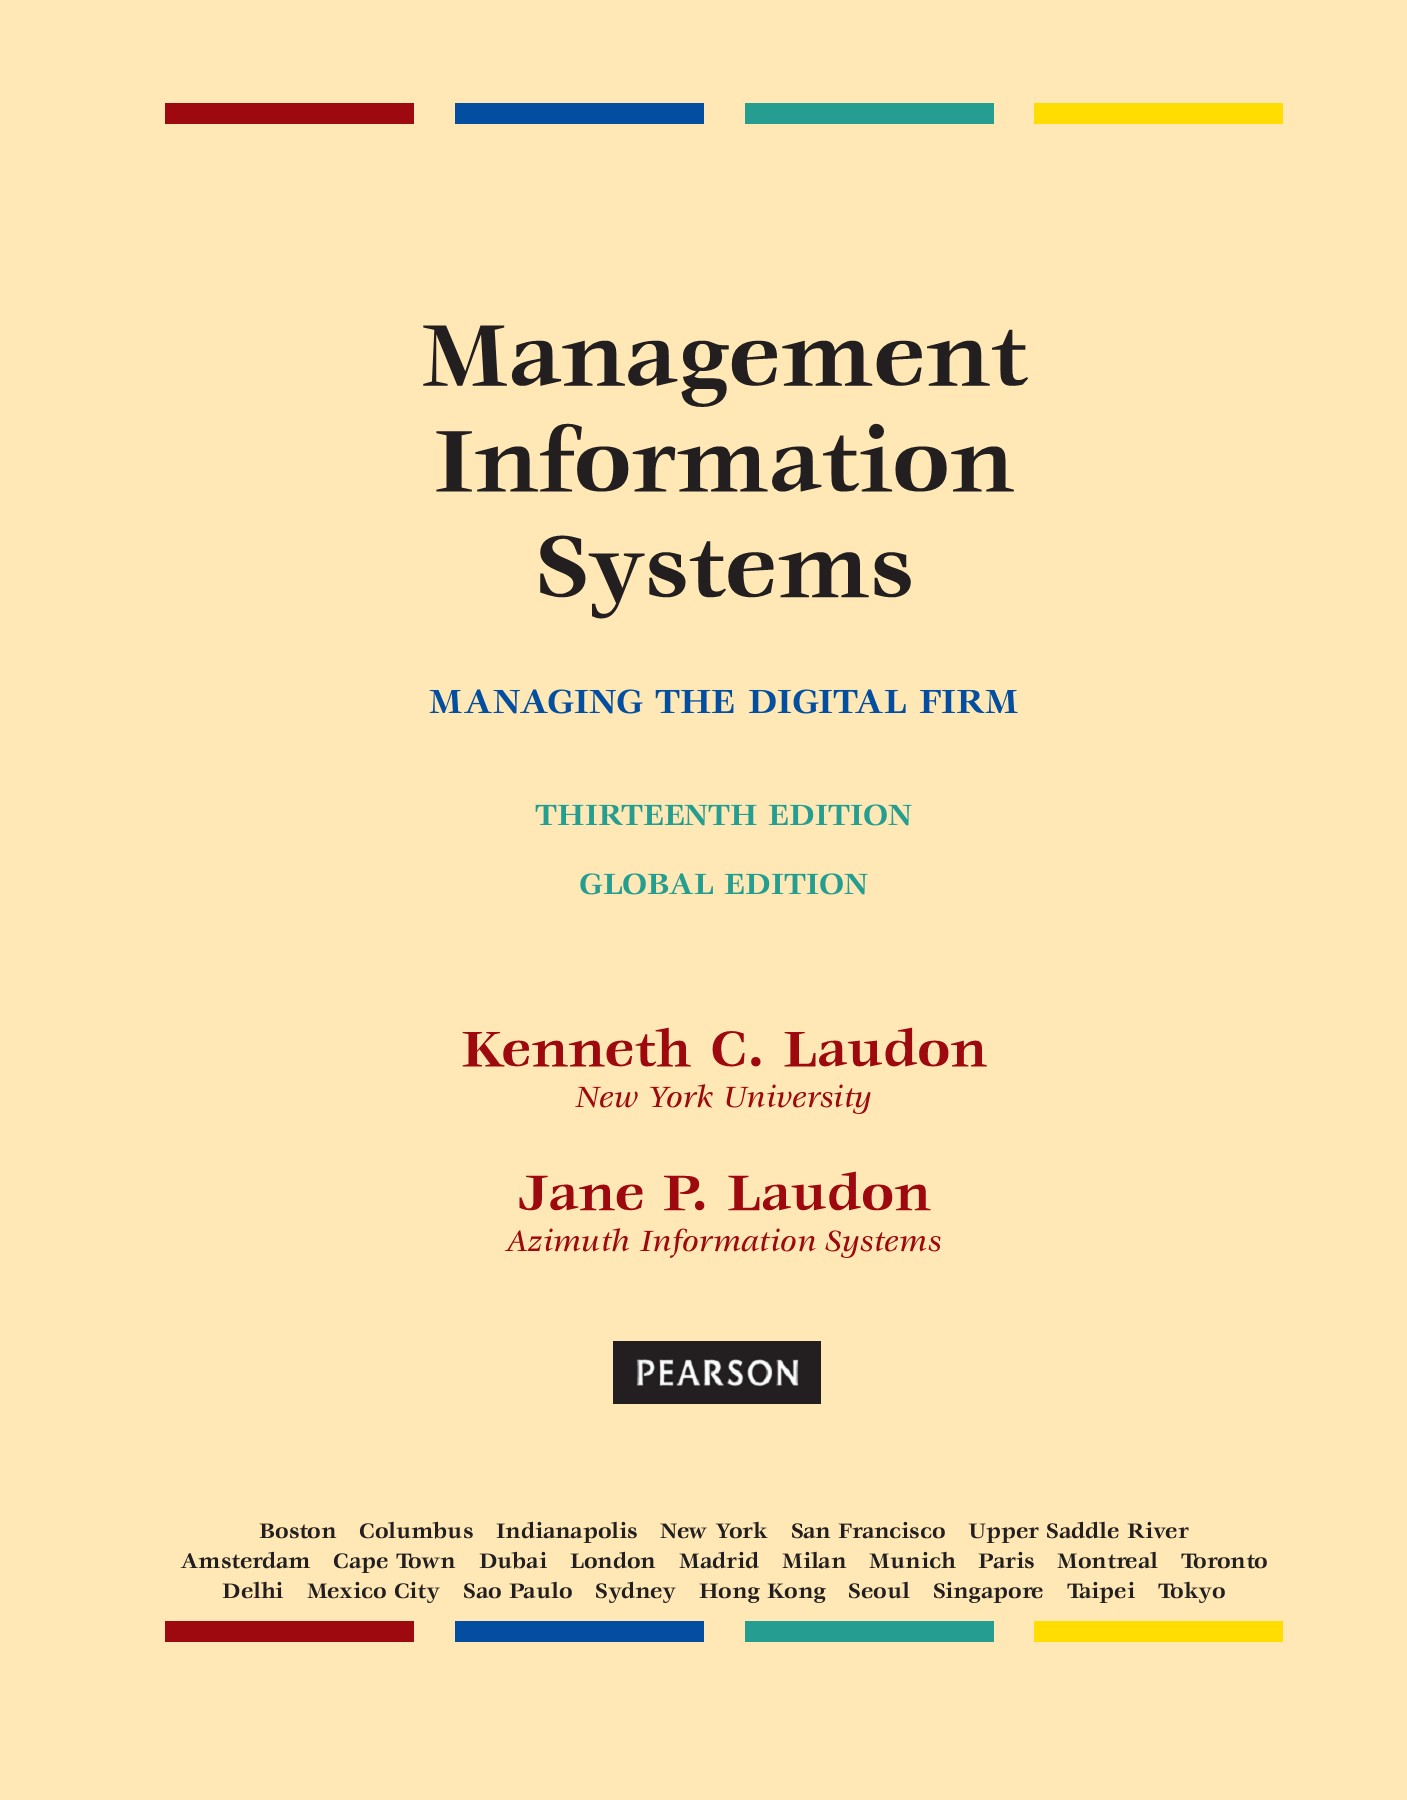 Management Information Systems - Managing the Digital Firm Pages 601